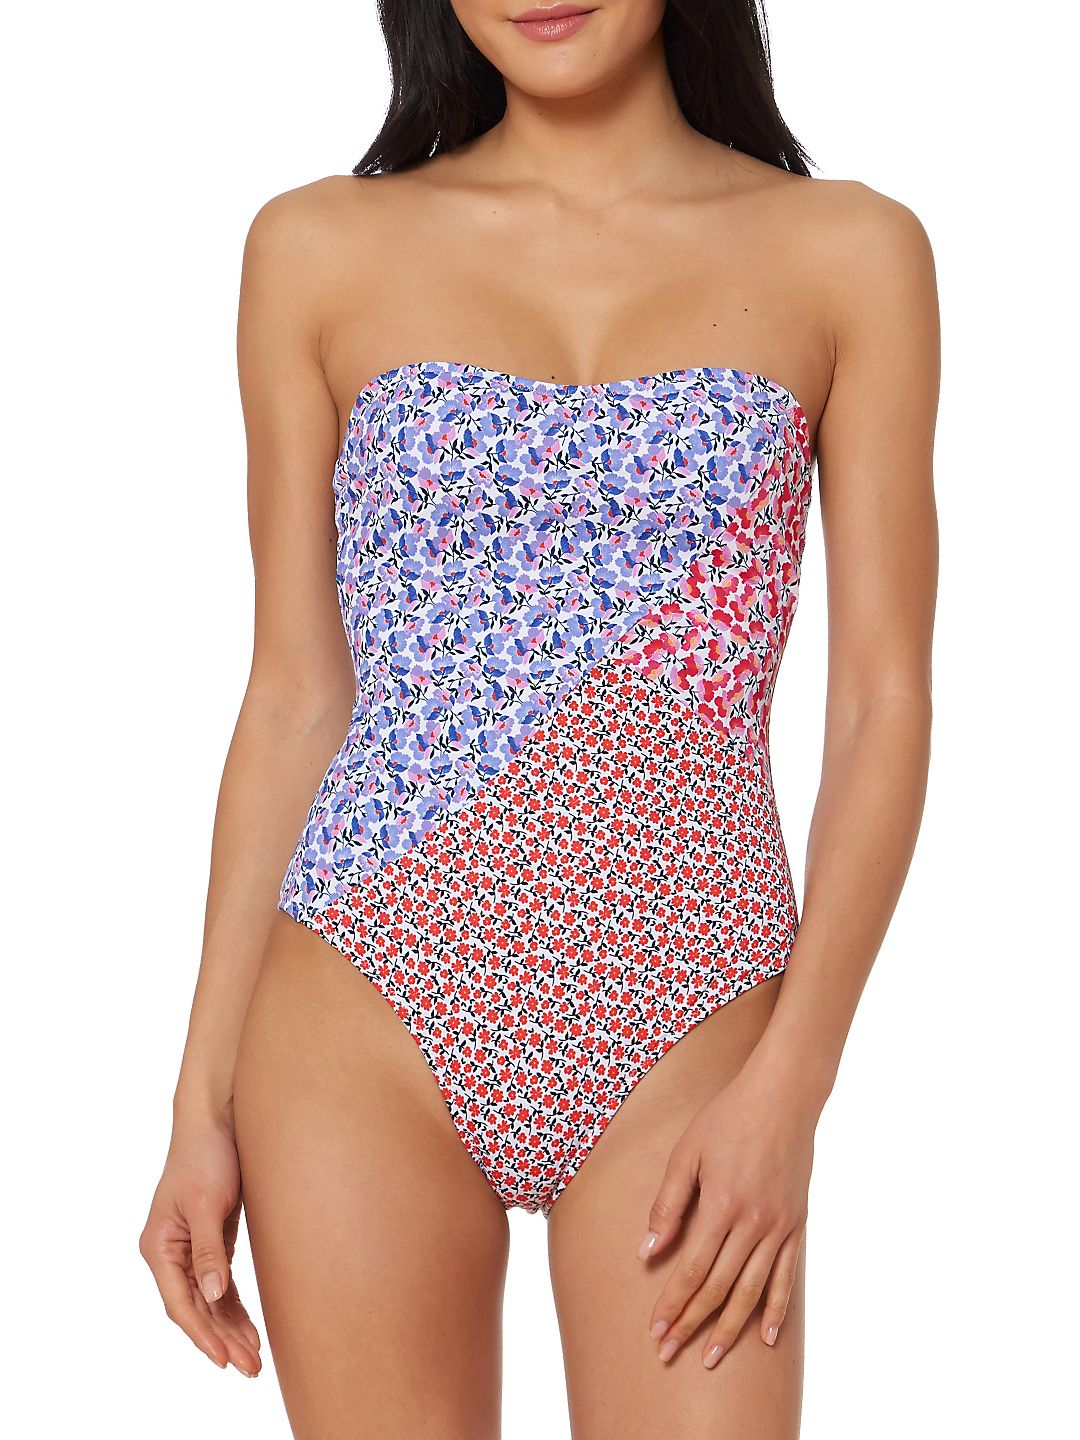 One-Piece Ditsy Floral Strapless Swimsuit